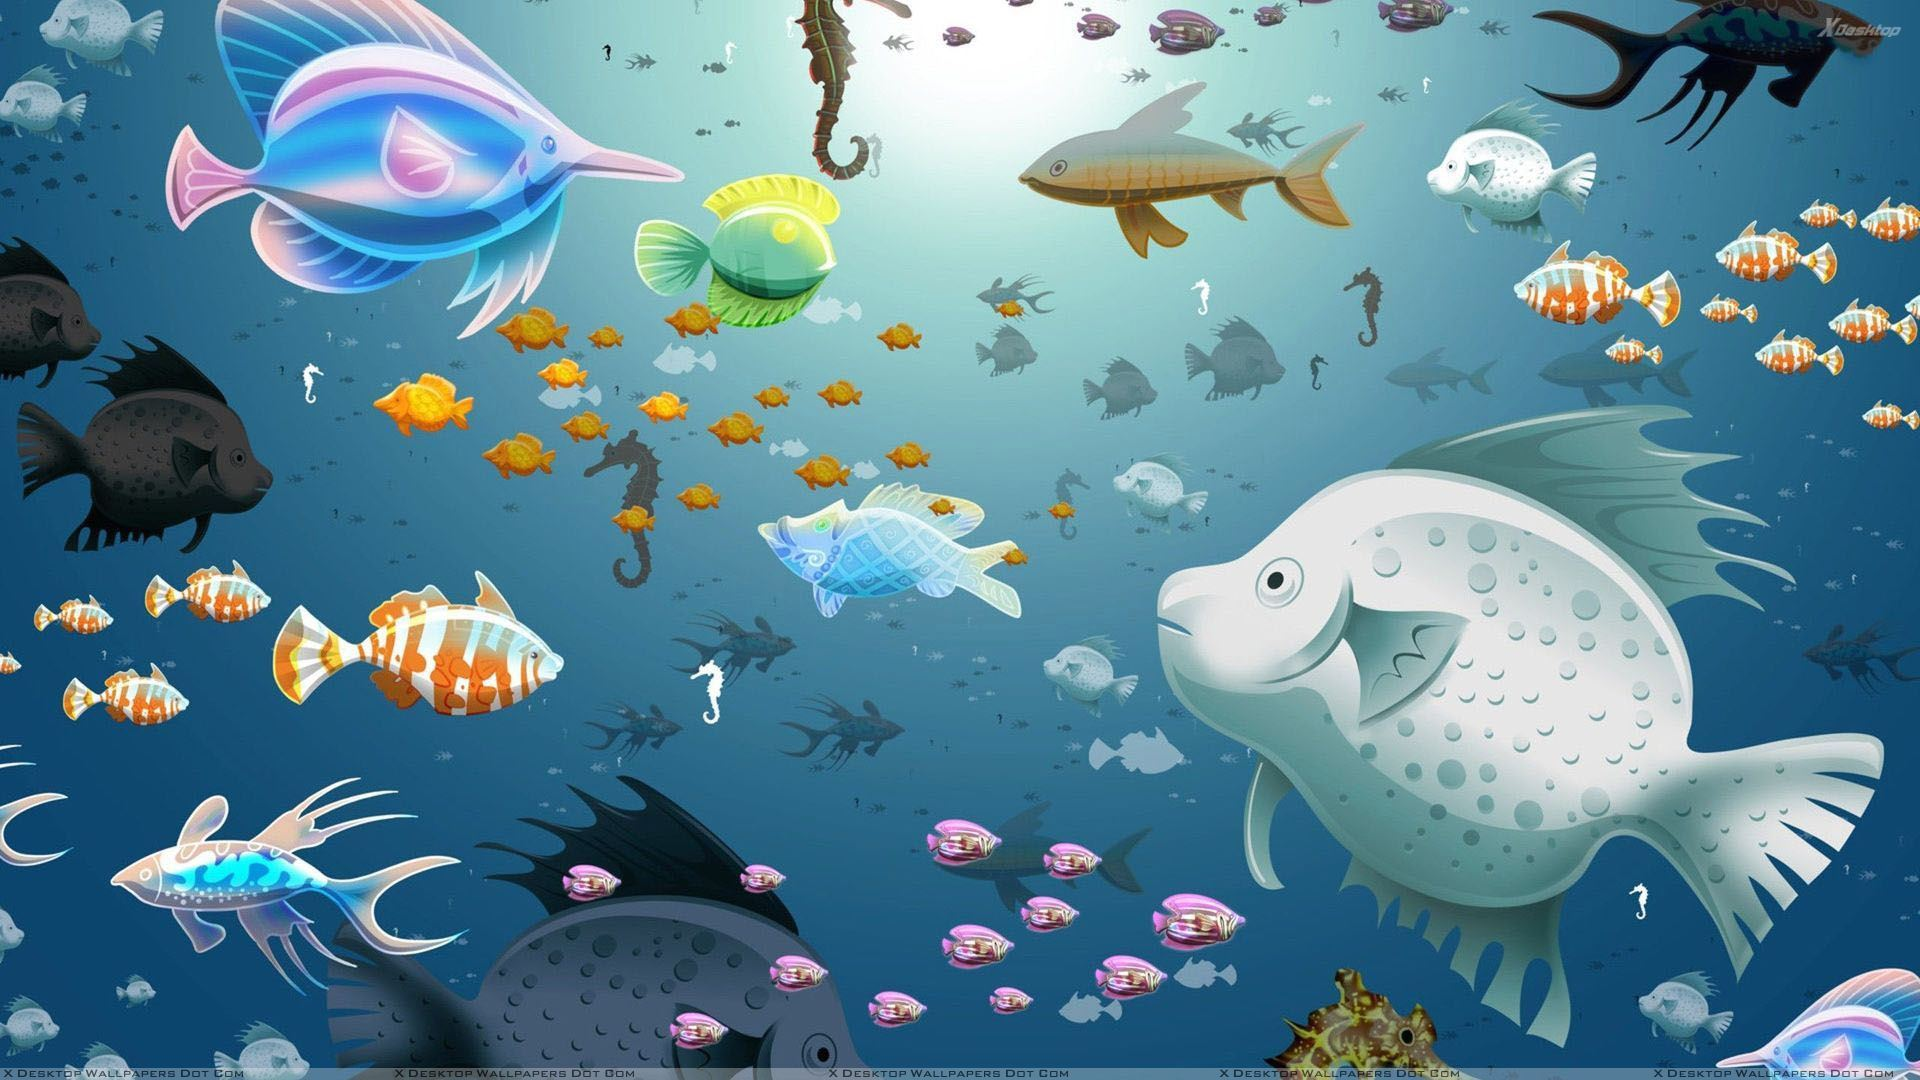 Free Download Artistic Colorful Fish In Water Wallpaper 1920x1080 For Your Desktop Mobile Tablet Explore 49 Fish In Water Wallpaper Hd Fish Wallpaper Free Fish Wallpaper For Desktop Wallpaper Fish